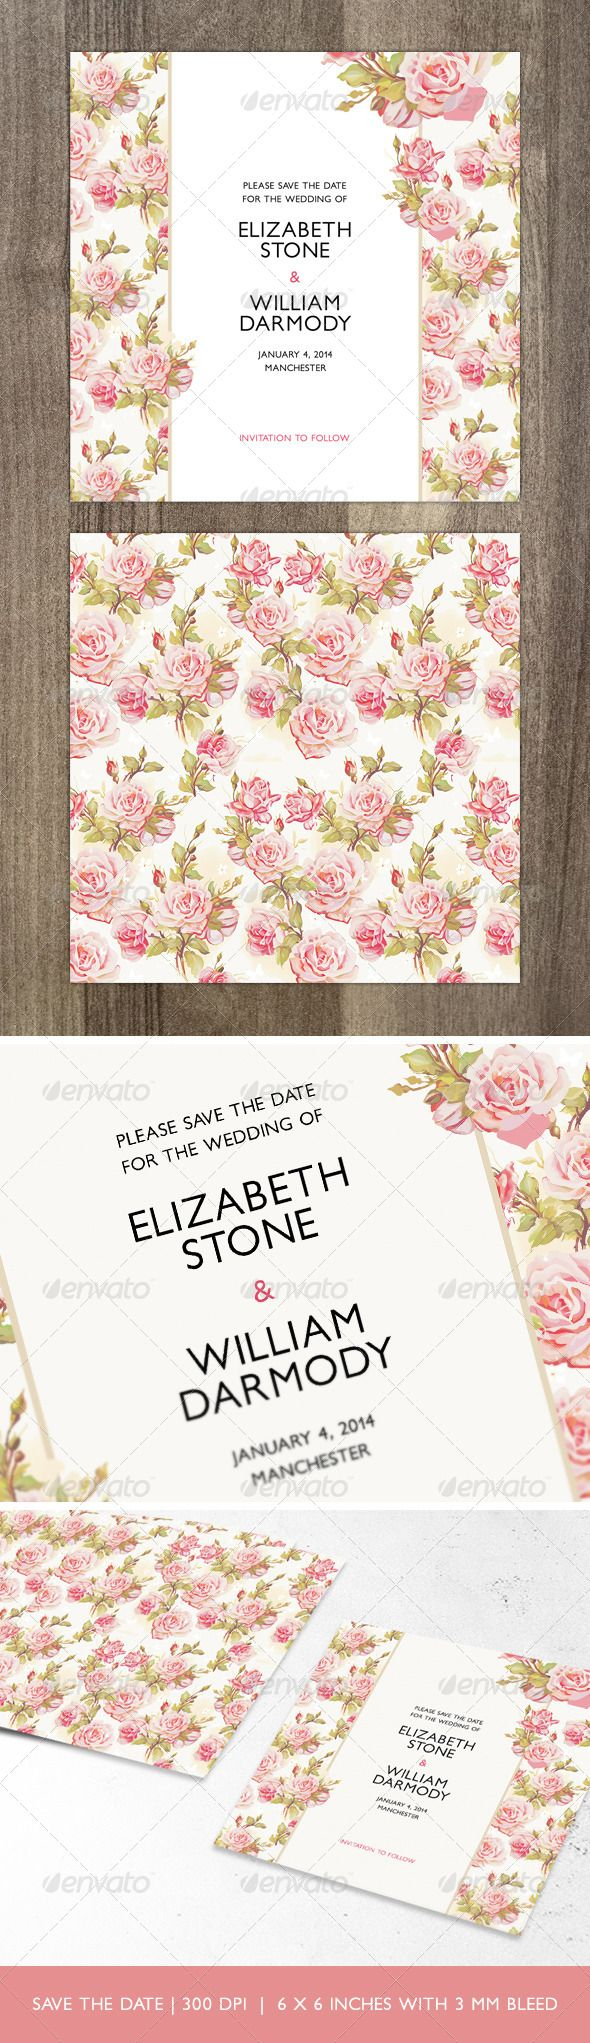 Printable, fully customisable romantic Save the Date card.  https://graphicriver.net/item/romantic-floral-save-the-date/5935657